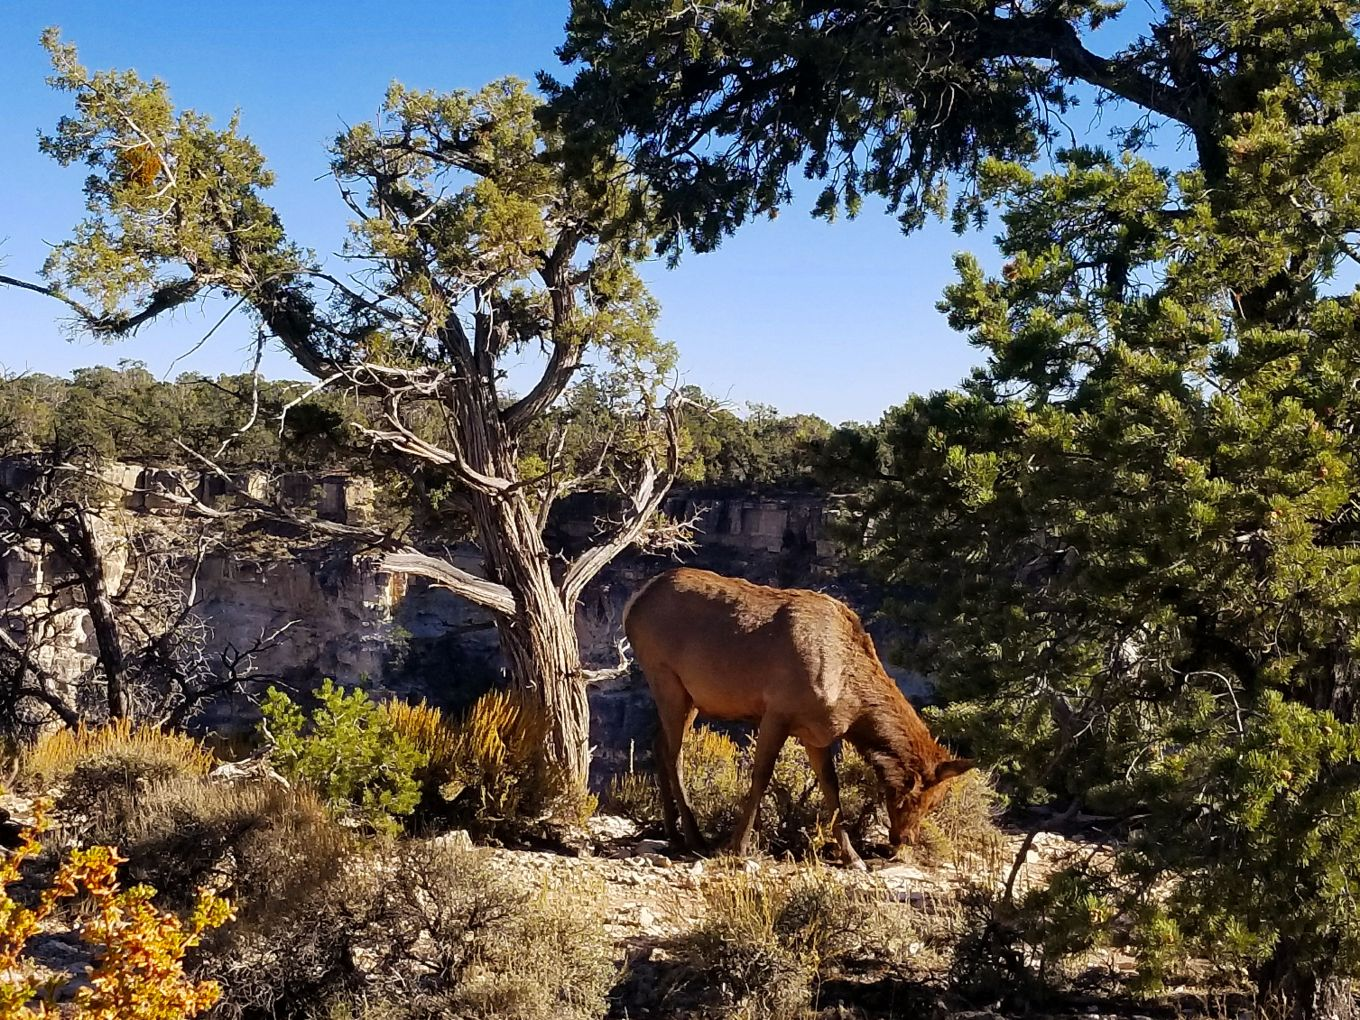 Elk Grazing, Grand Canyon National Park - South Rim